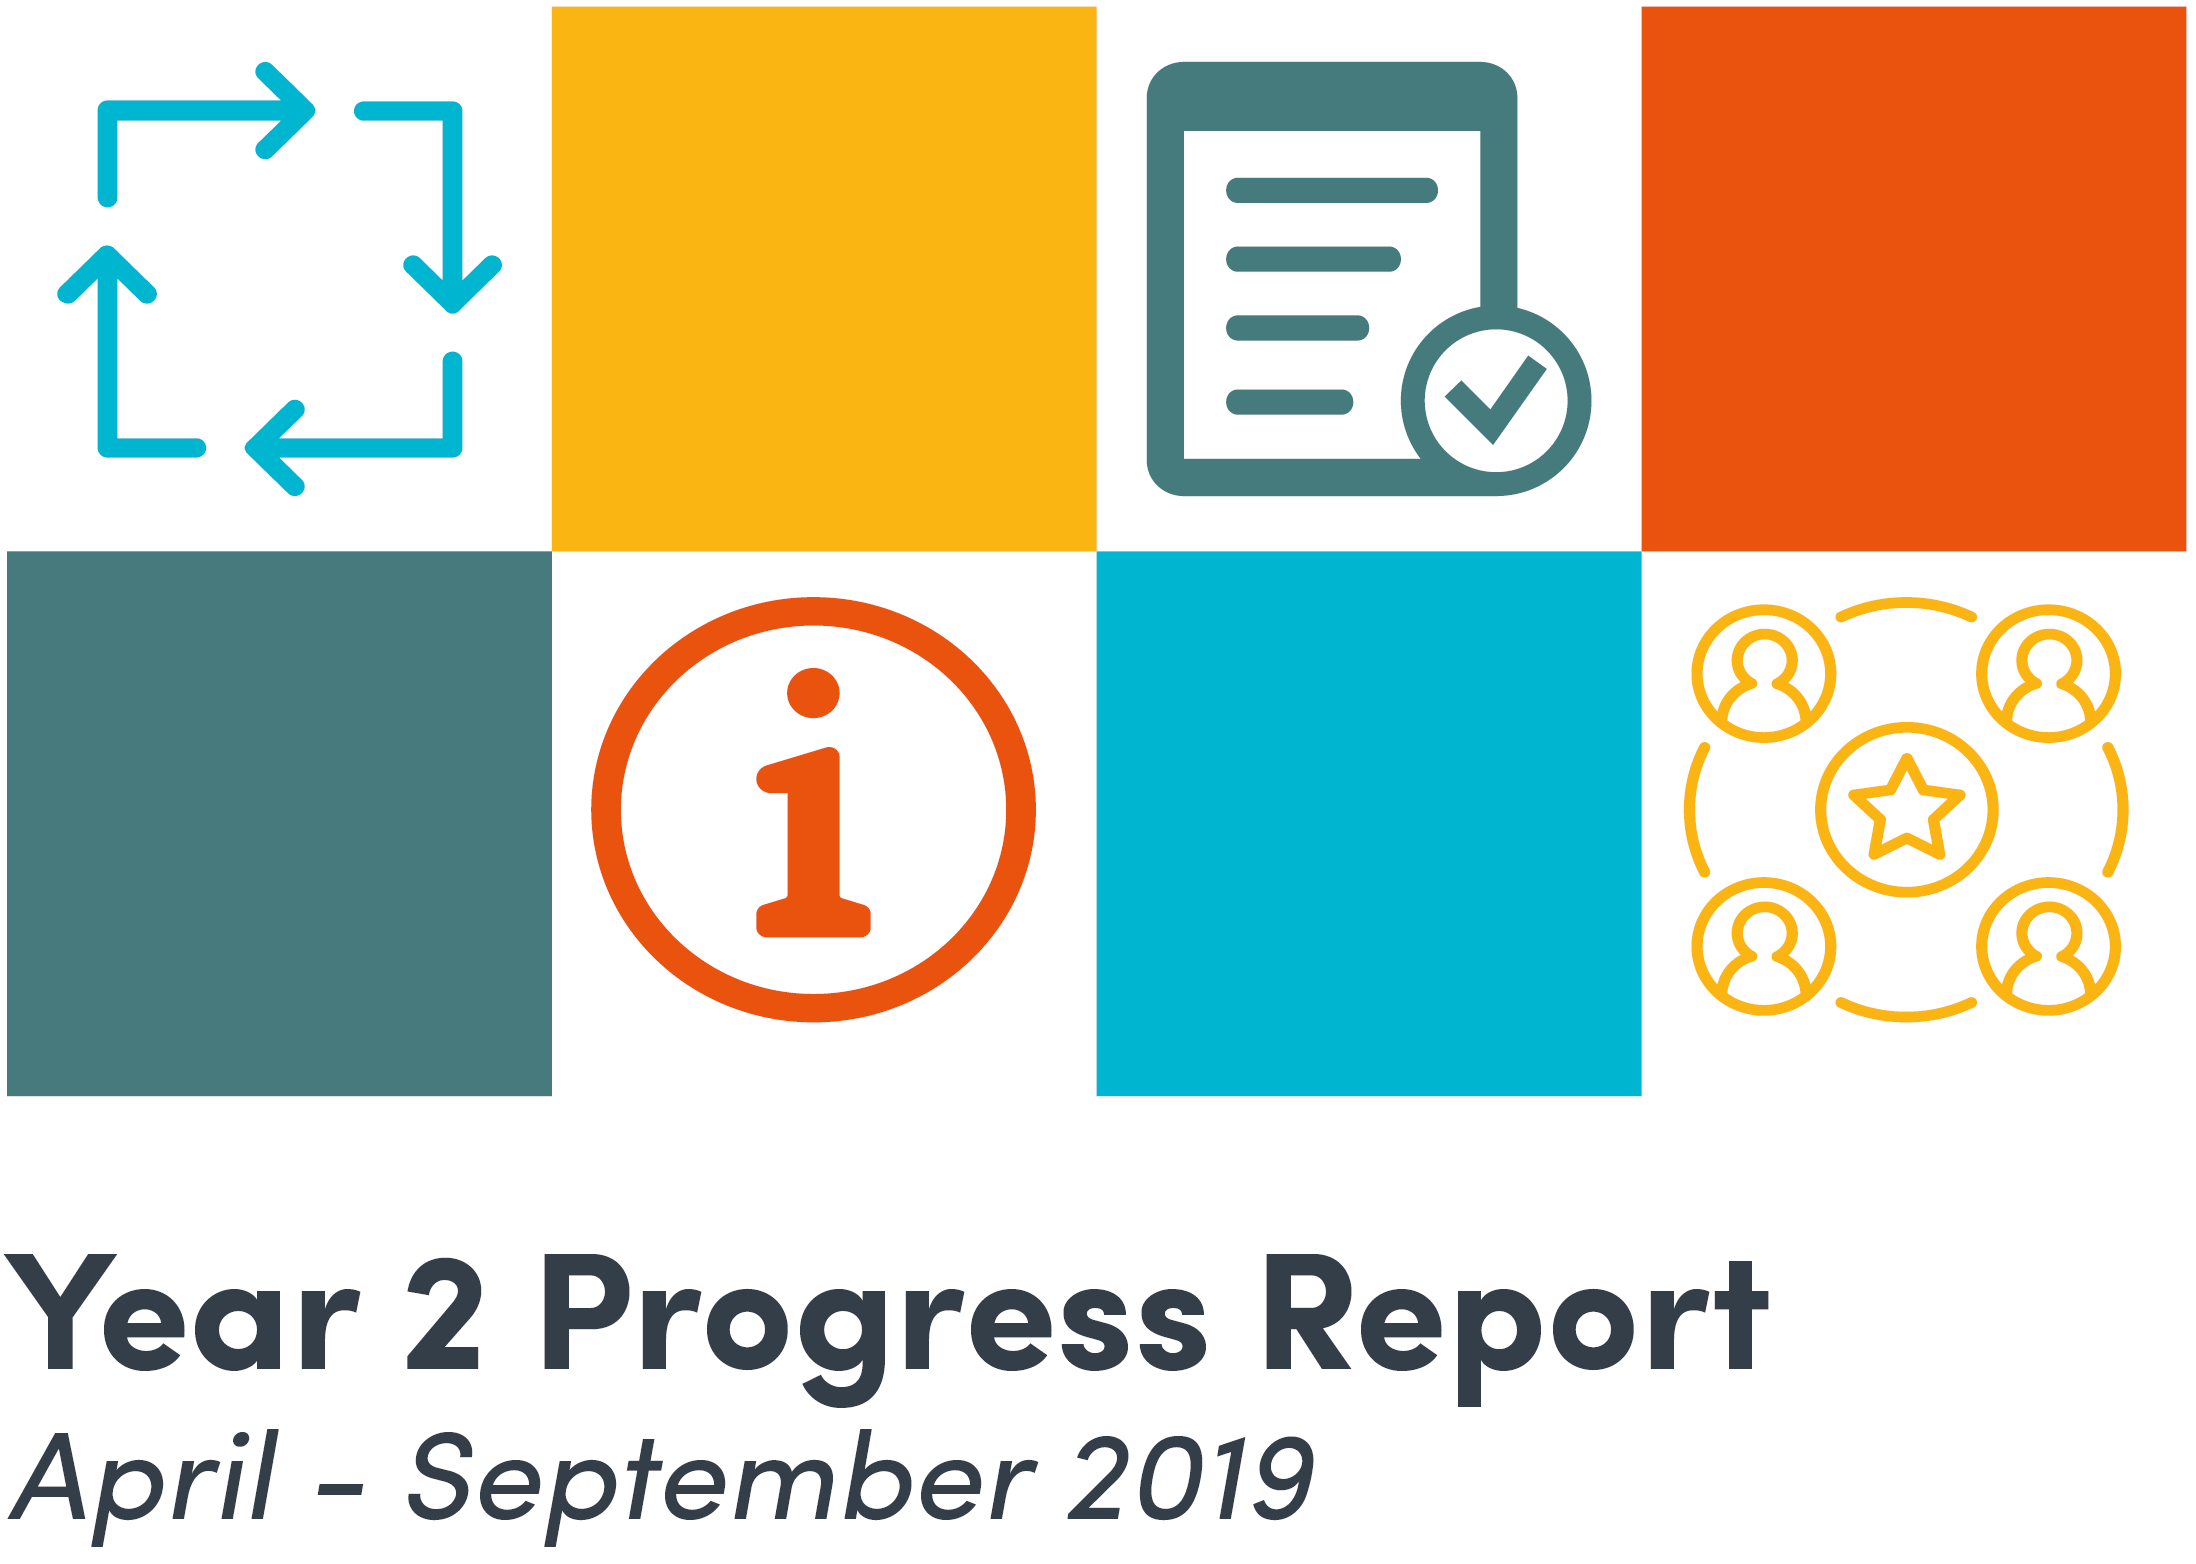 Support in the Right Direction 2021: Year 2 progress report